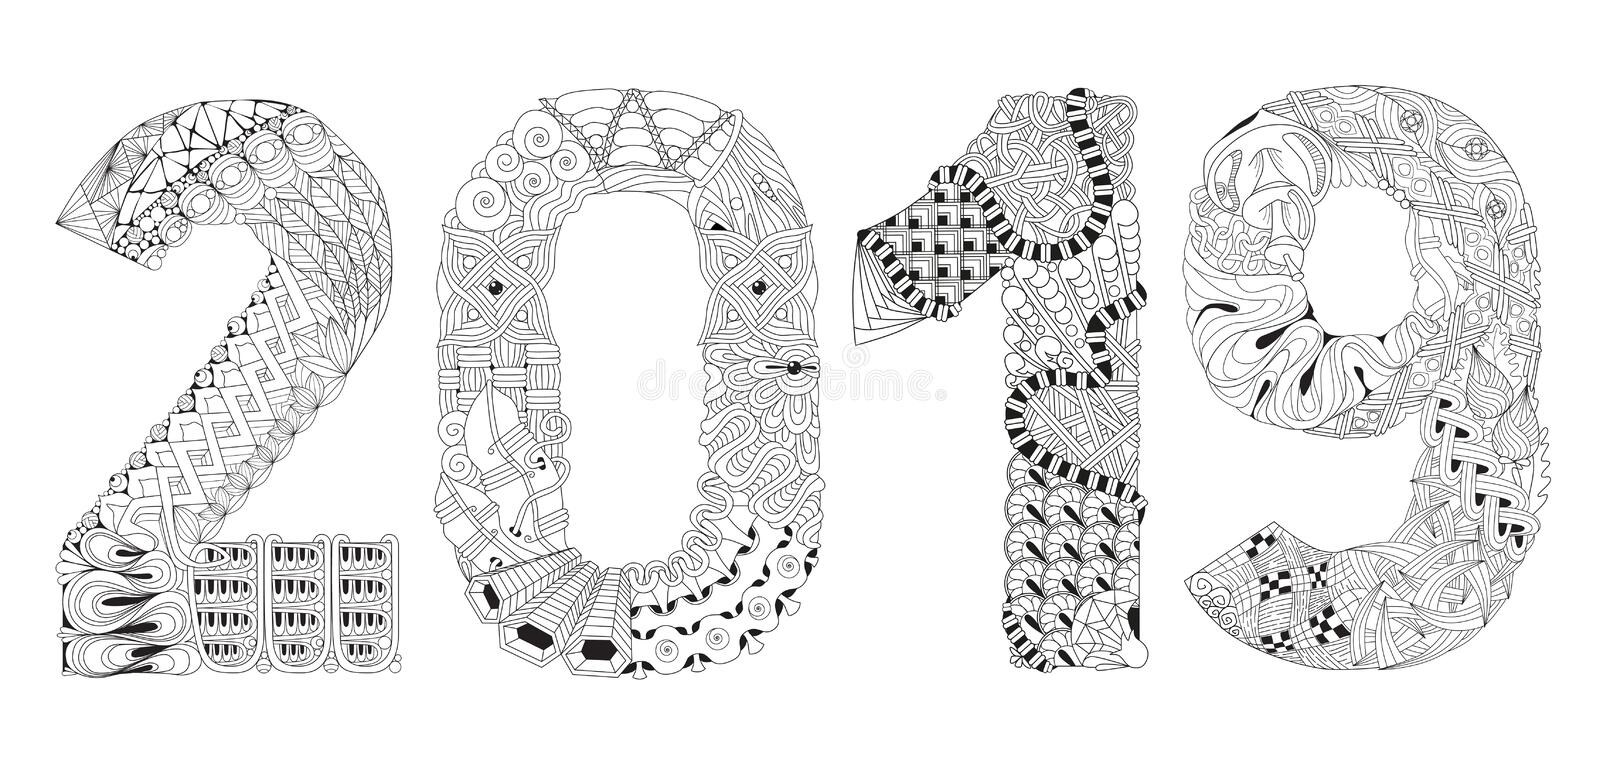 Happy New Year 9 Coloring Pages HD Printable Photos, Images ...